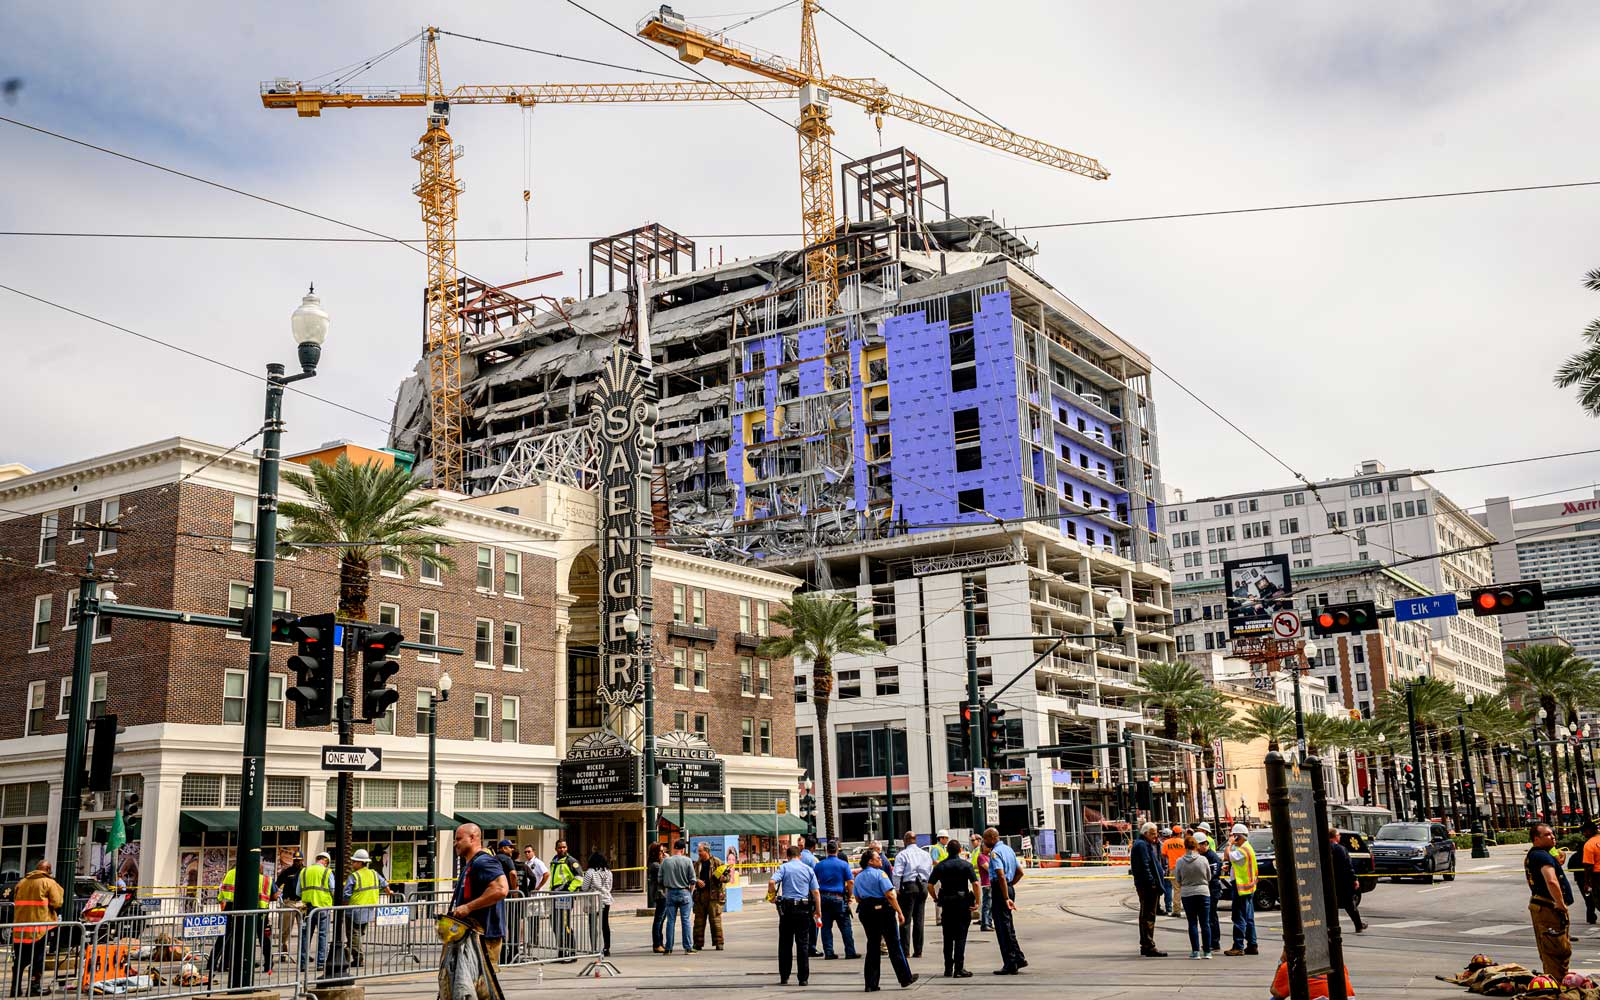 Partial building collapse at the Hard Rock Hotel construction site downtown New Orleans, Louisiana on October 12, 2019.